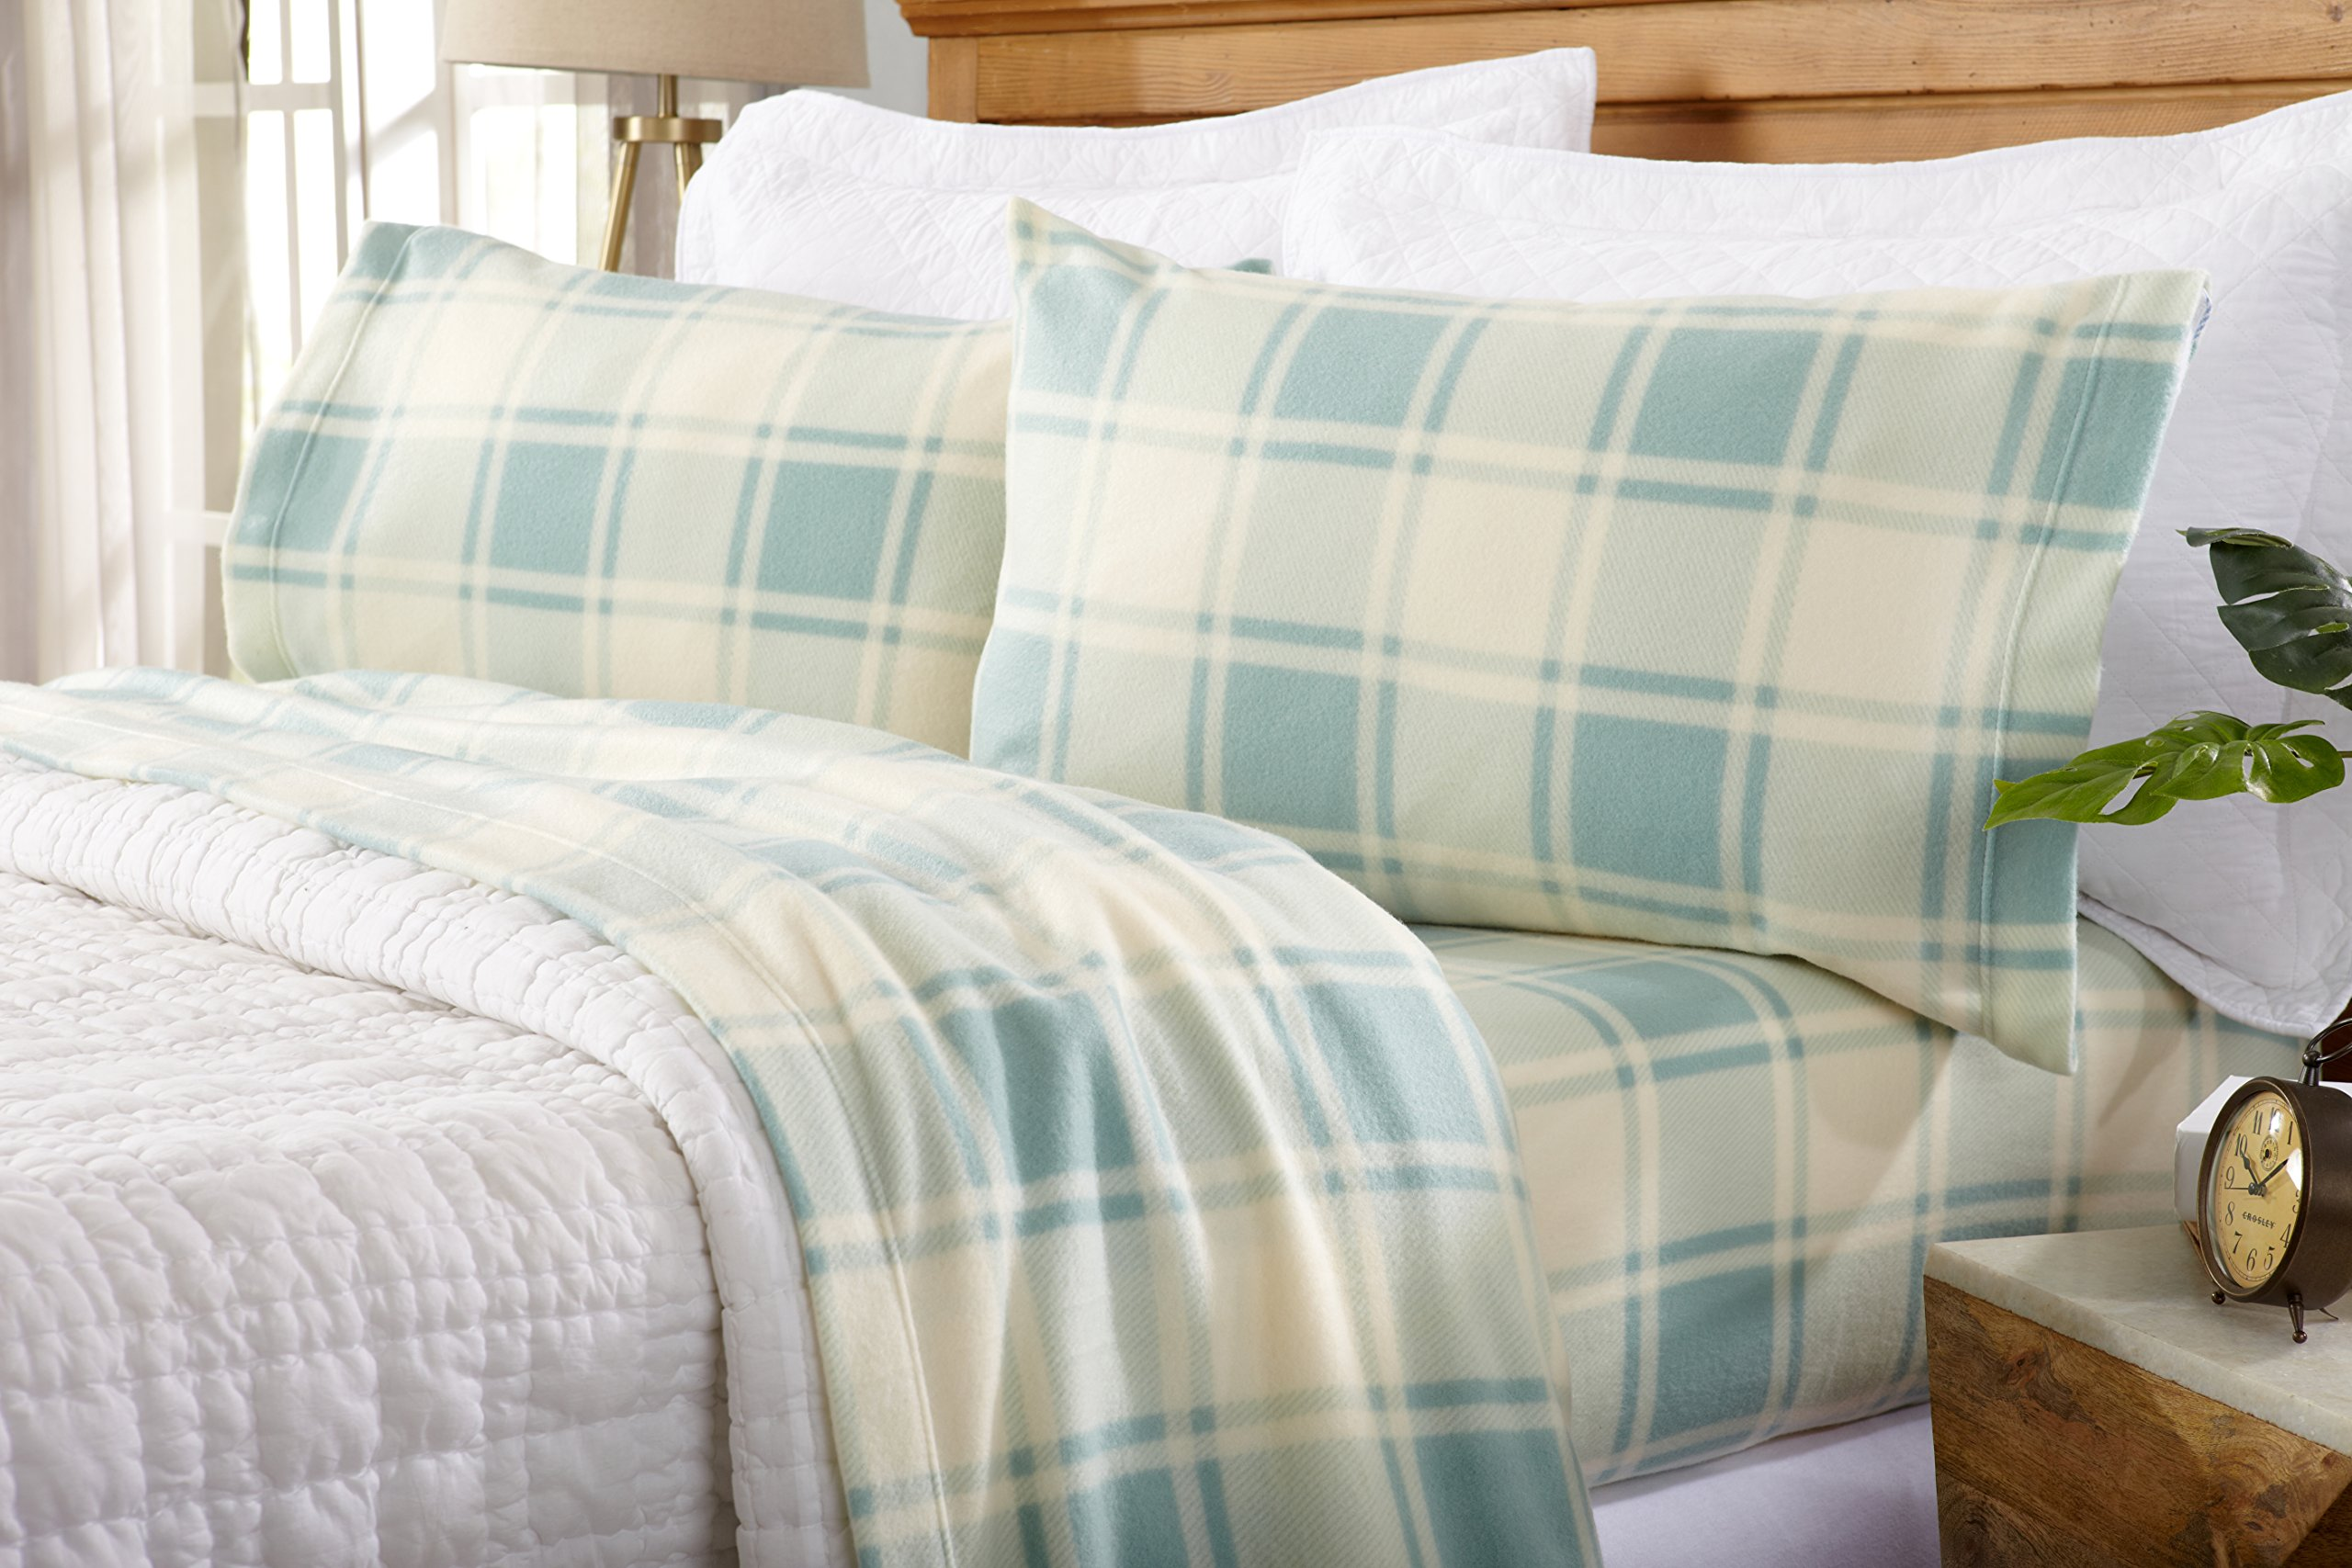 Great Bay Home Super Soft Extra Plush Plaid Polar Fleece Sheet Set. Cozy, Warm, Durable, Smooth, Breathable Winter Sheets with Plaid Pattern. Dara Collection By Brand. (Queen, Harbor Blue) by Great Bay Home (Image #4)